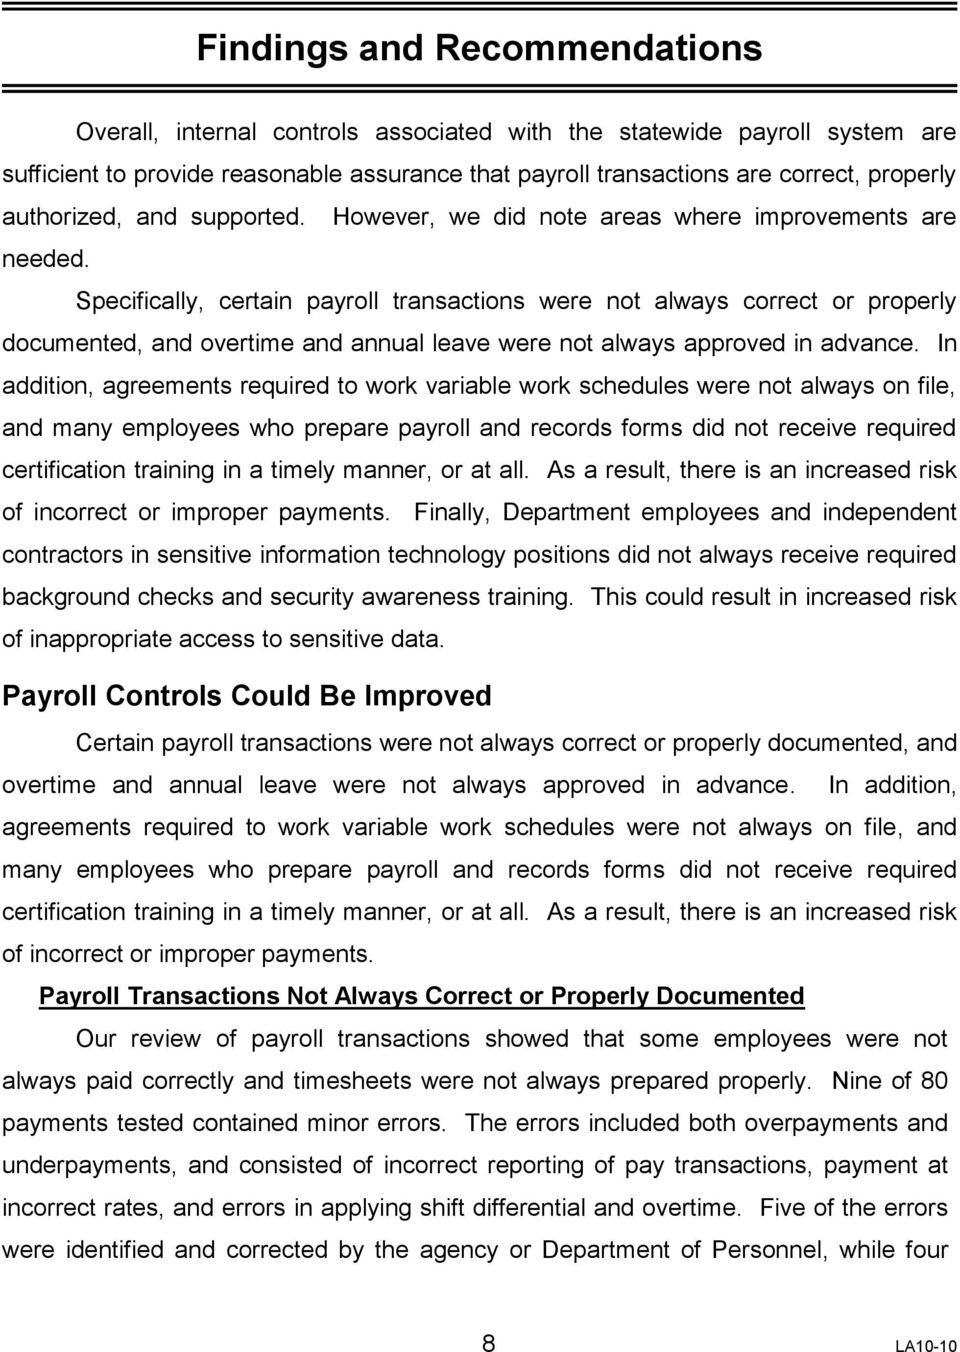 Specifically, certain payroll transactions were not always correct or properly documented, and overtime and annual leave were not always approved in advance.